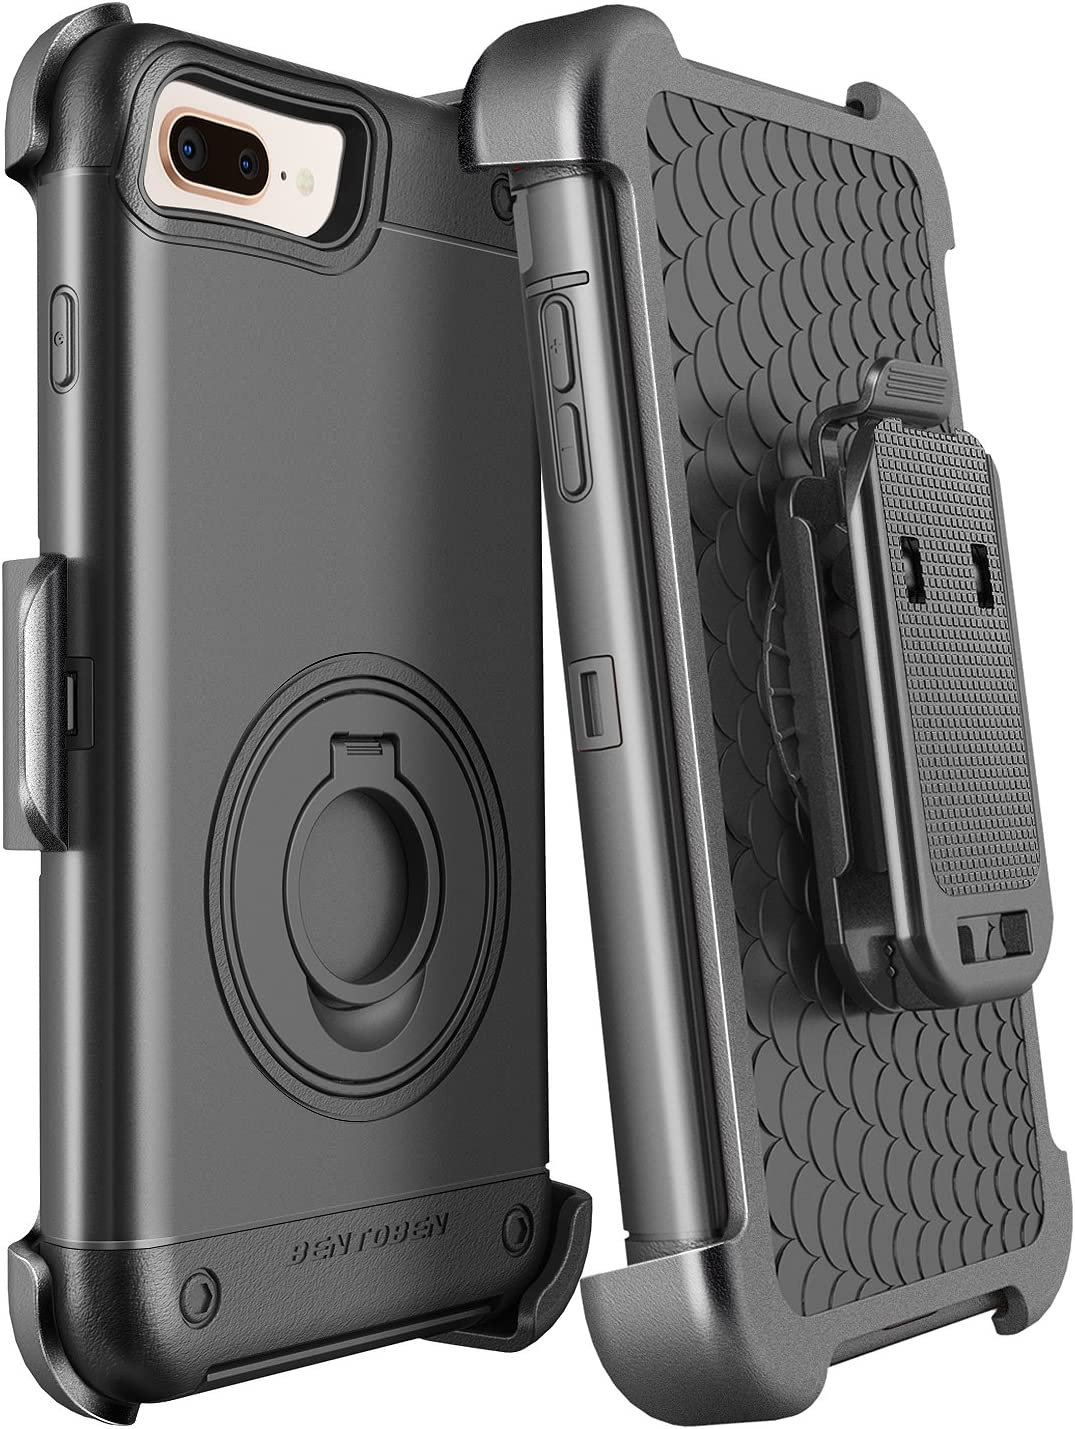 iPhone 8 Plus Case, iPhone 7 Plus Case Belt Clip, BENTOBEN Heavy Duty Full Body Rugged Shockproof Kickstand Holster Cover Hybrid Hard PC Protective Phone Case for iPhone 8 Plus/iPhone 7 Plus, Black